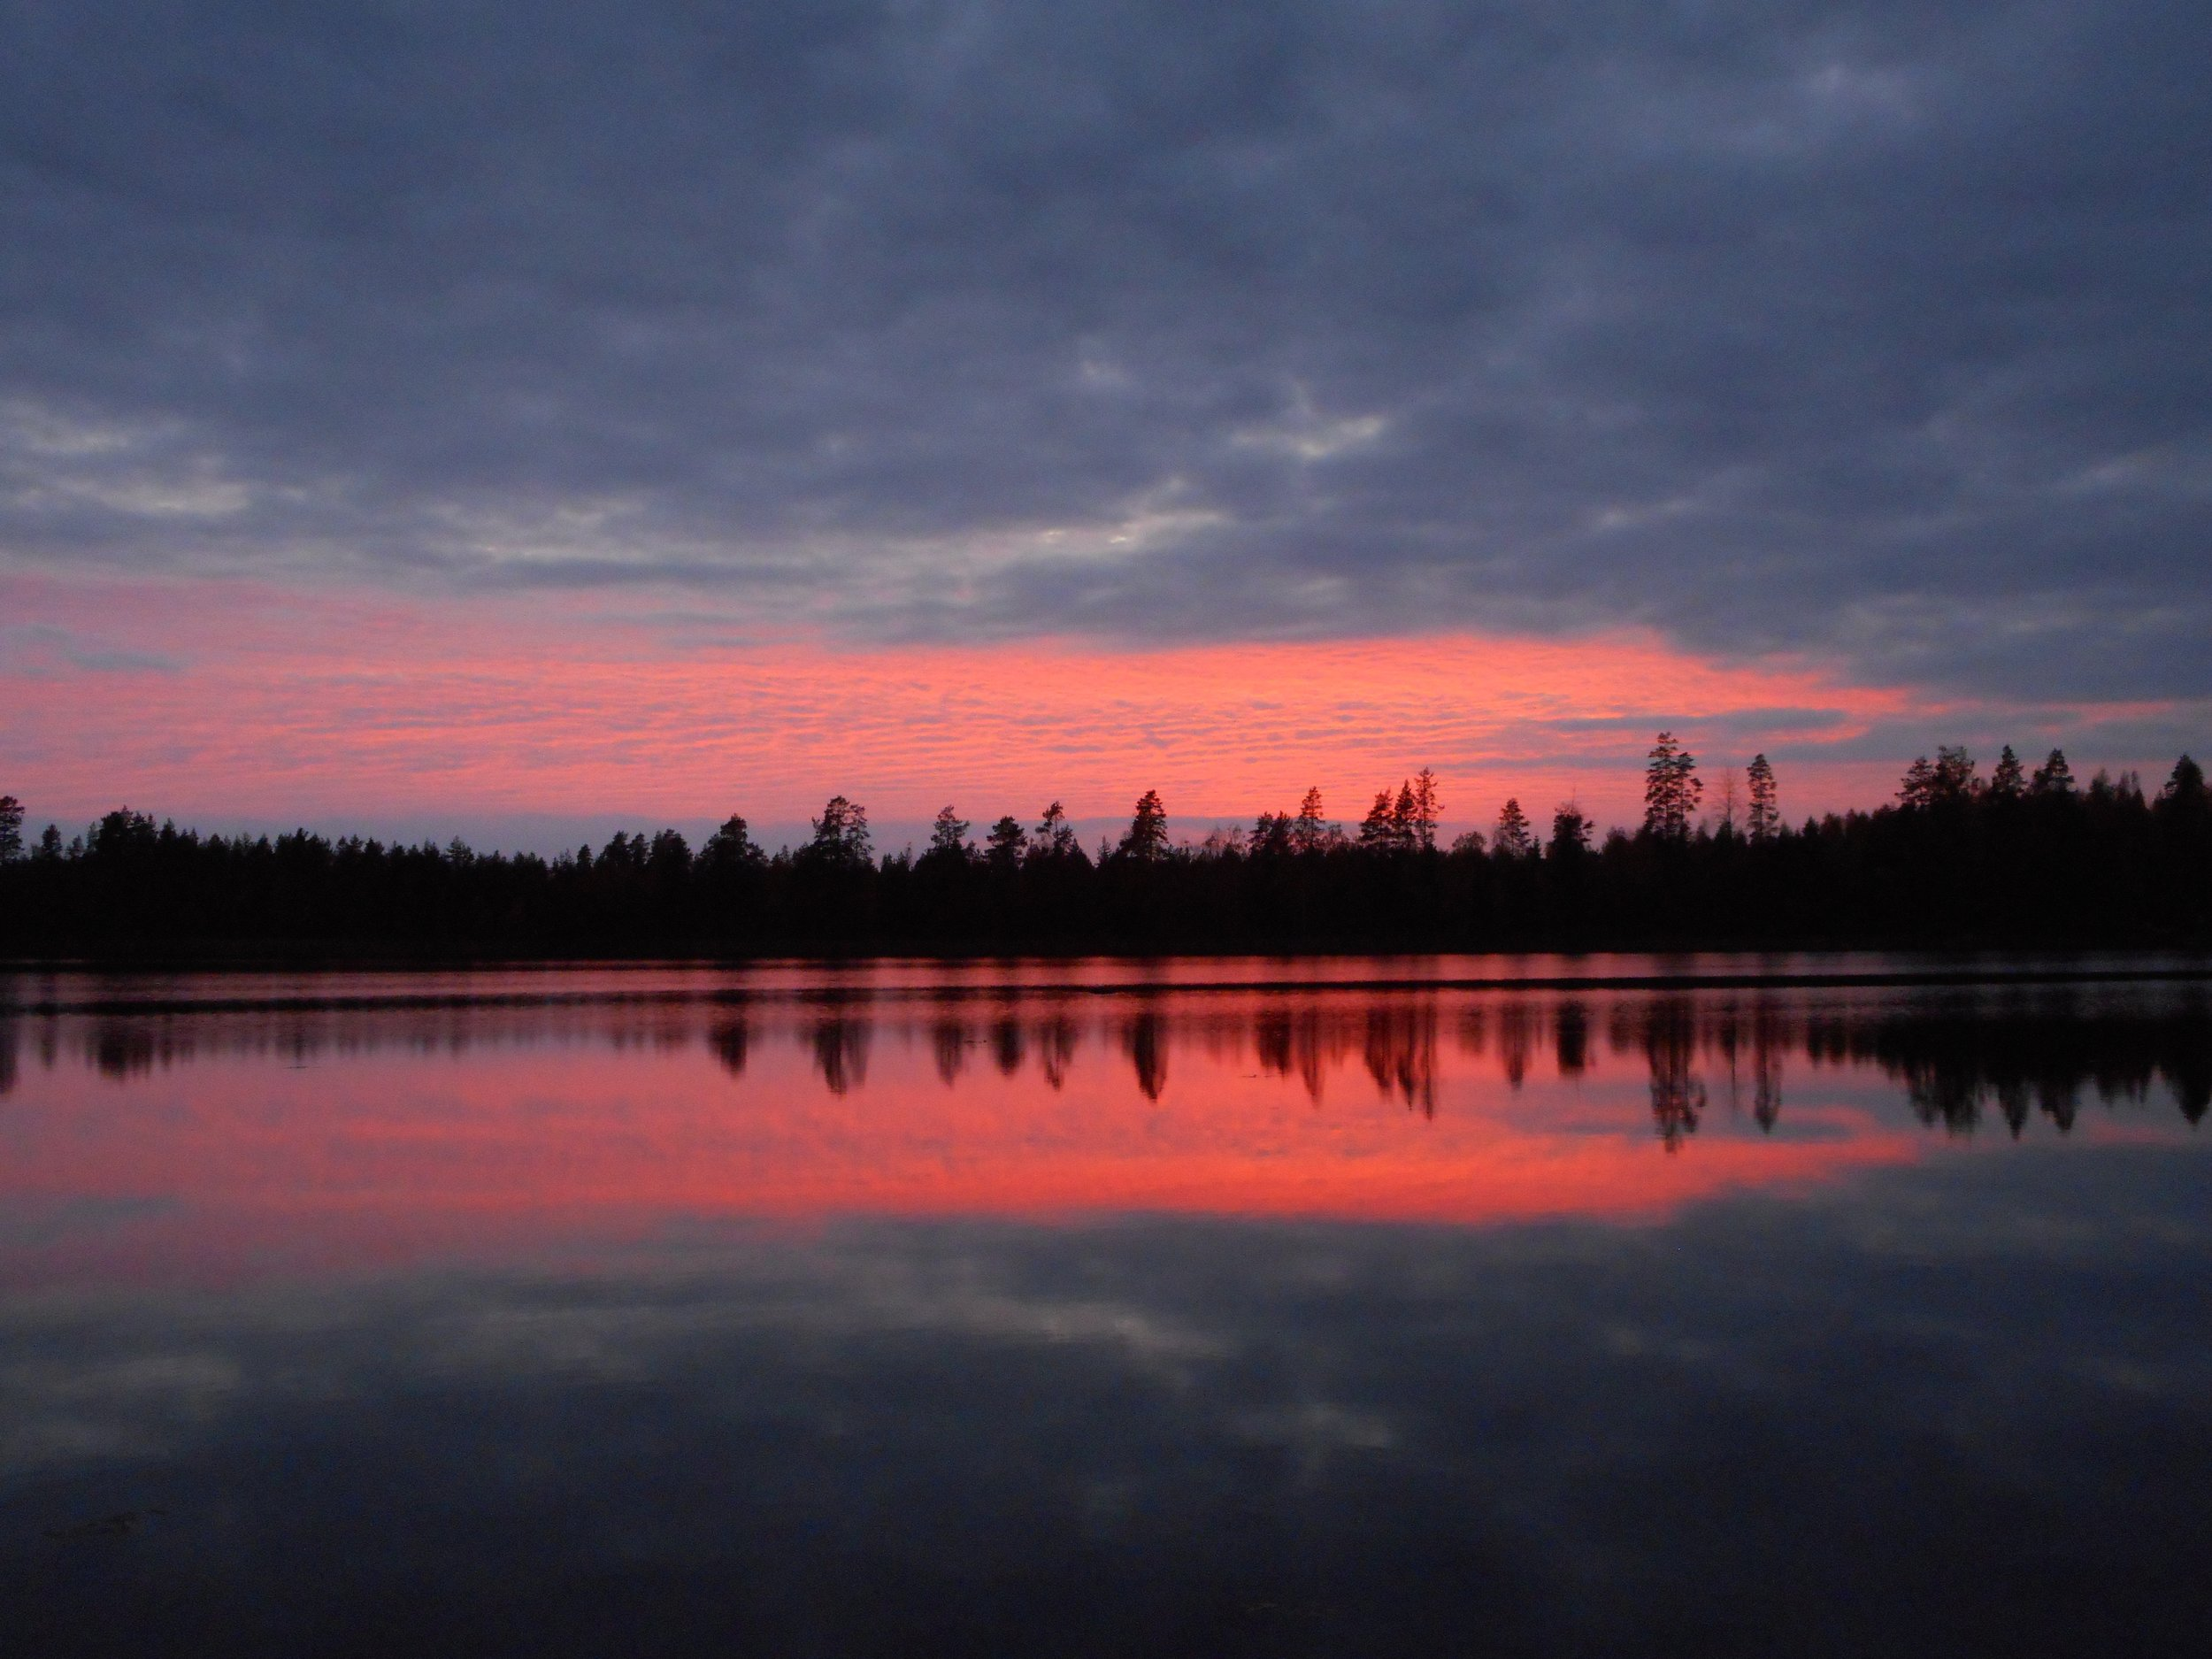 sunset in Finland beautiful colorful sky